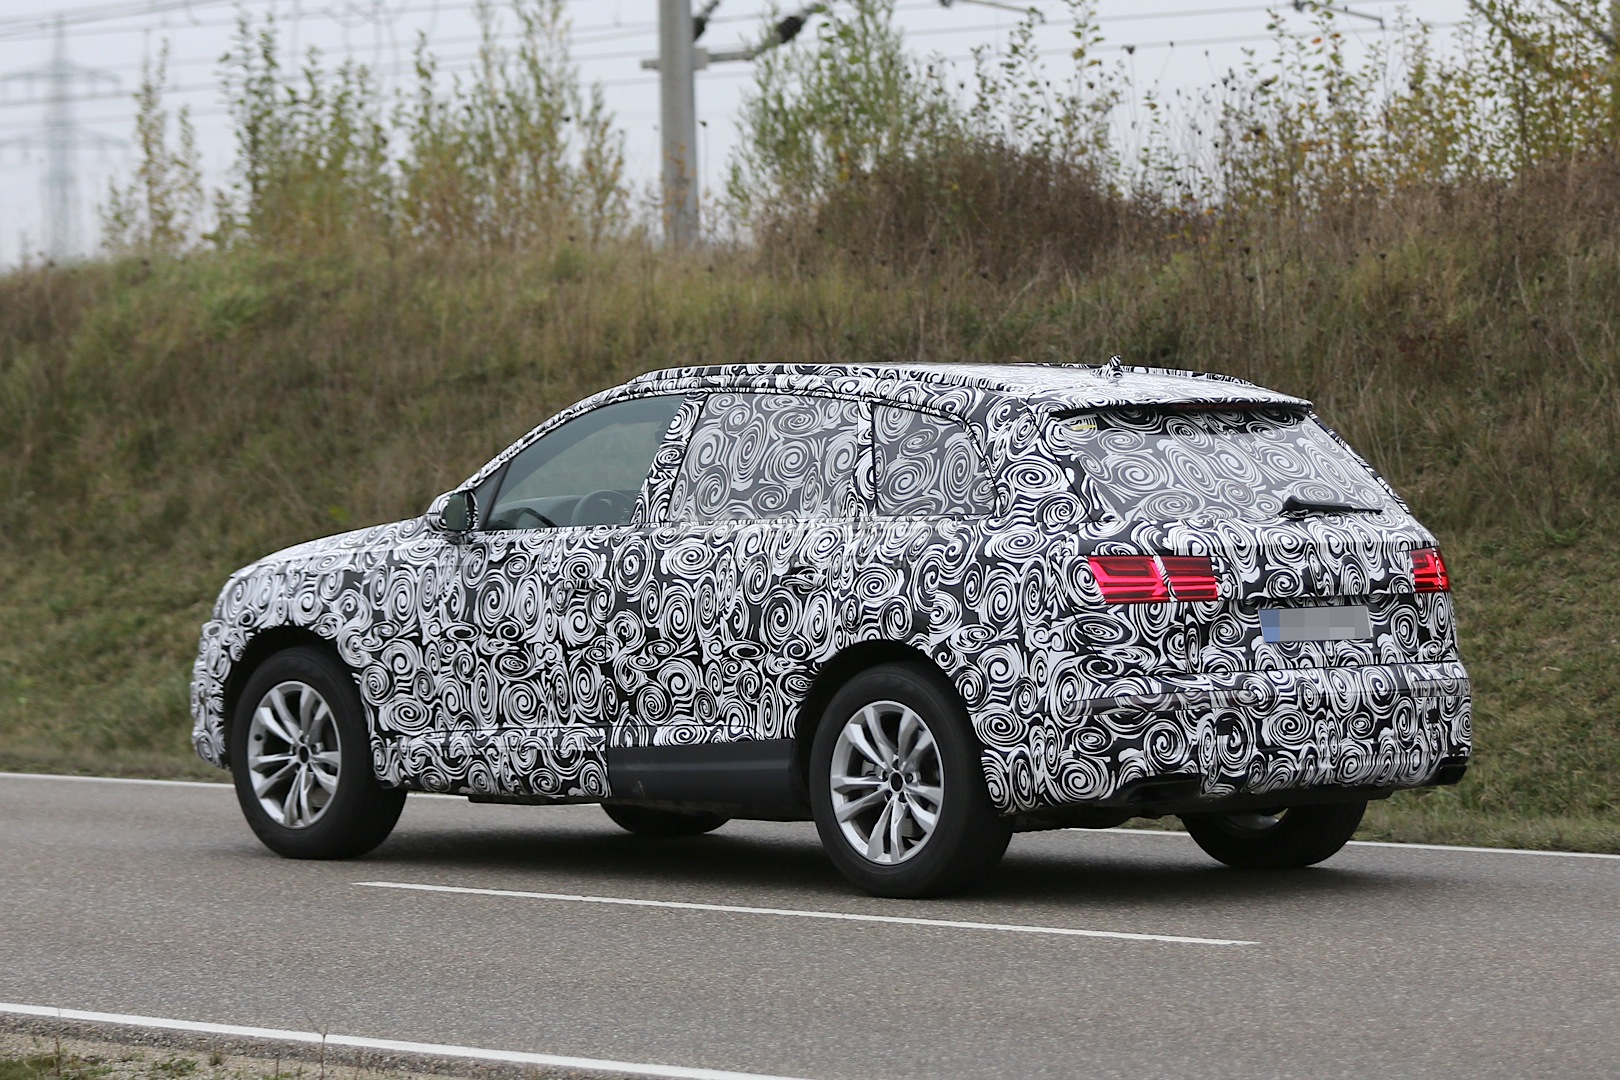 http://s1.cdn.autoevolution.com/images/news/gallery/2016-audi-q7-spied-with-matrix-led-headlights-for-first-time_6.jpg